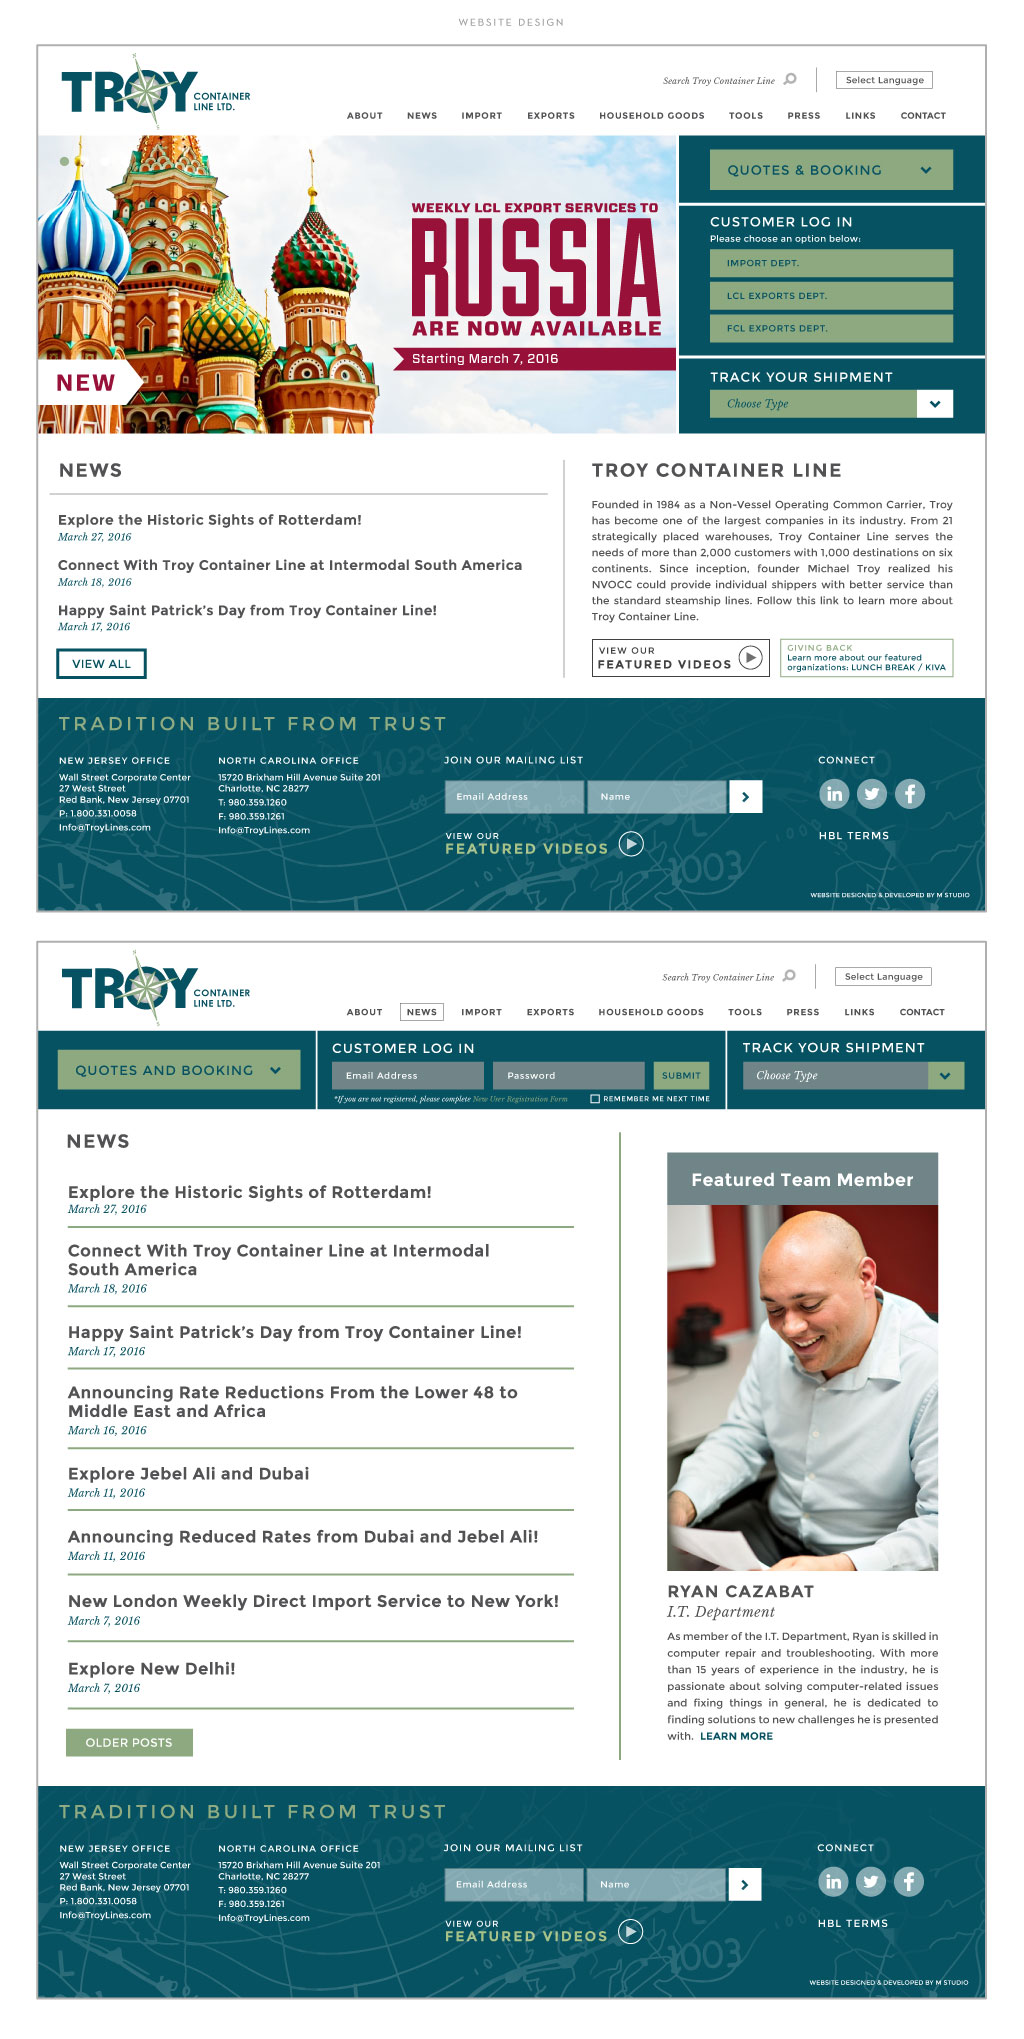 Troy Container Line web design by M studio